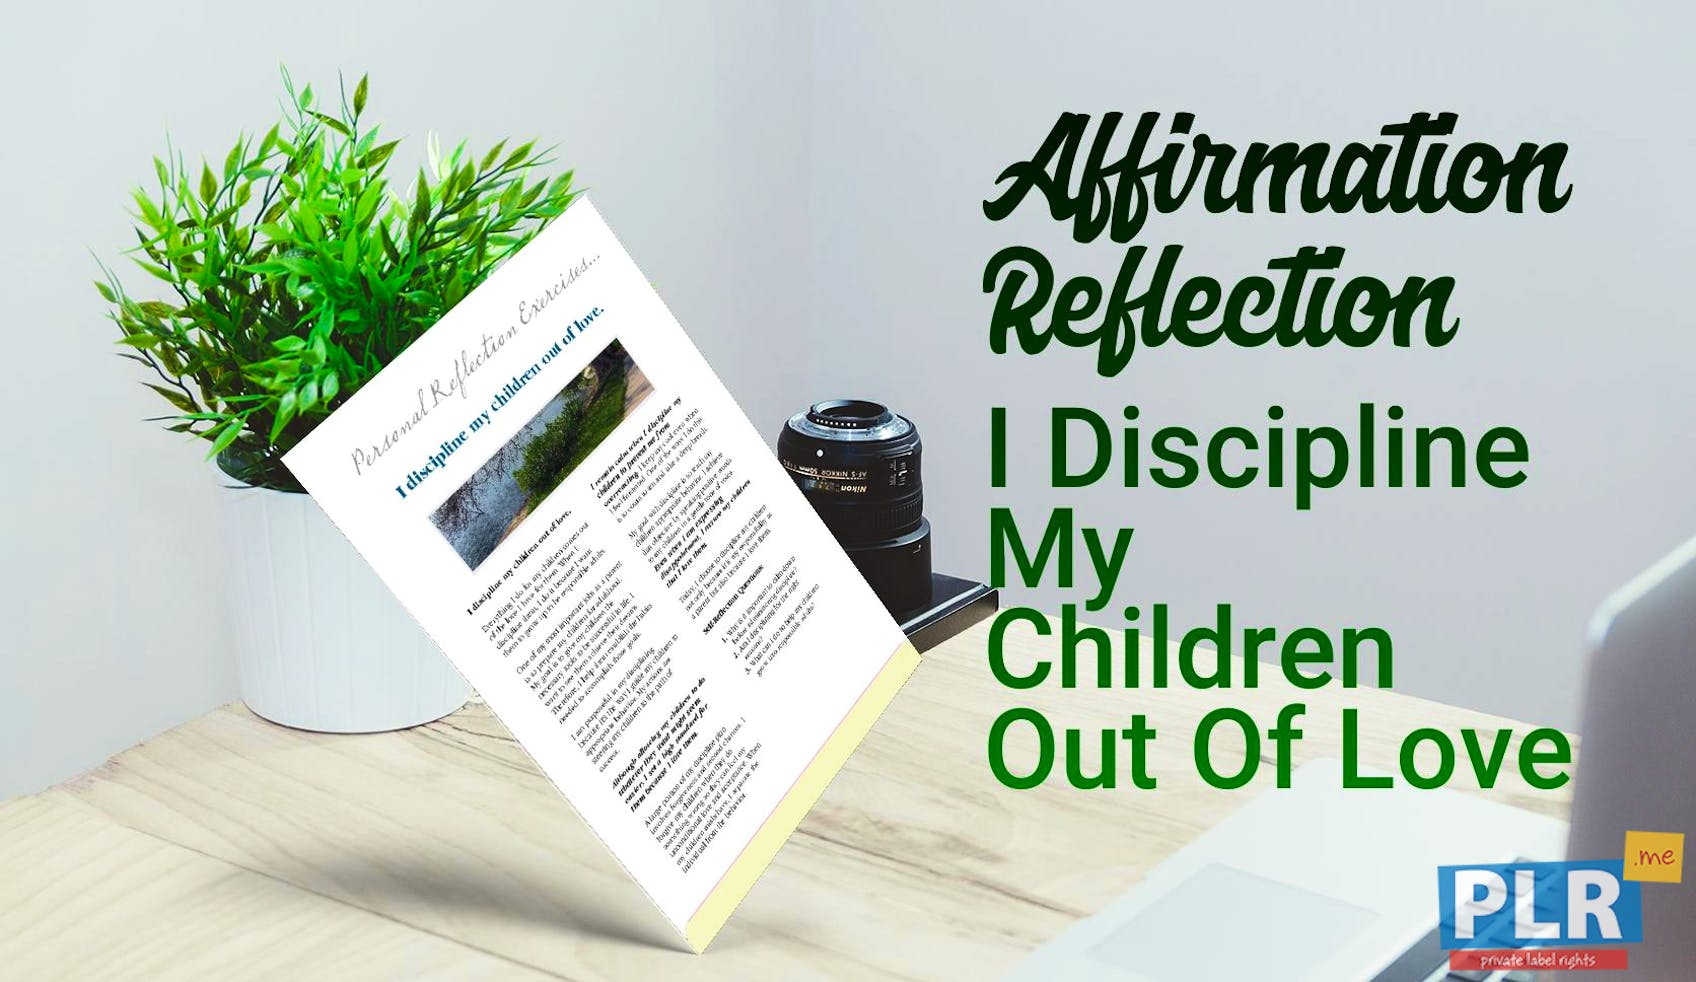 I Discipline My Children Out Of Love